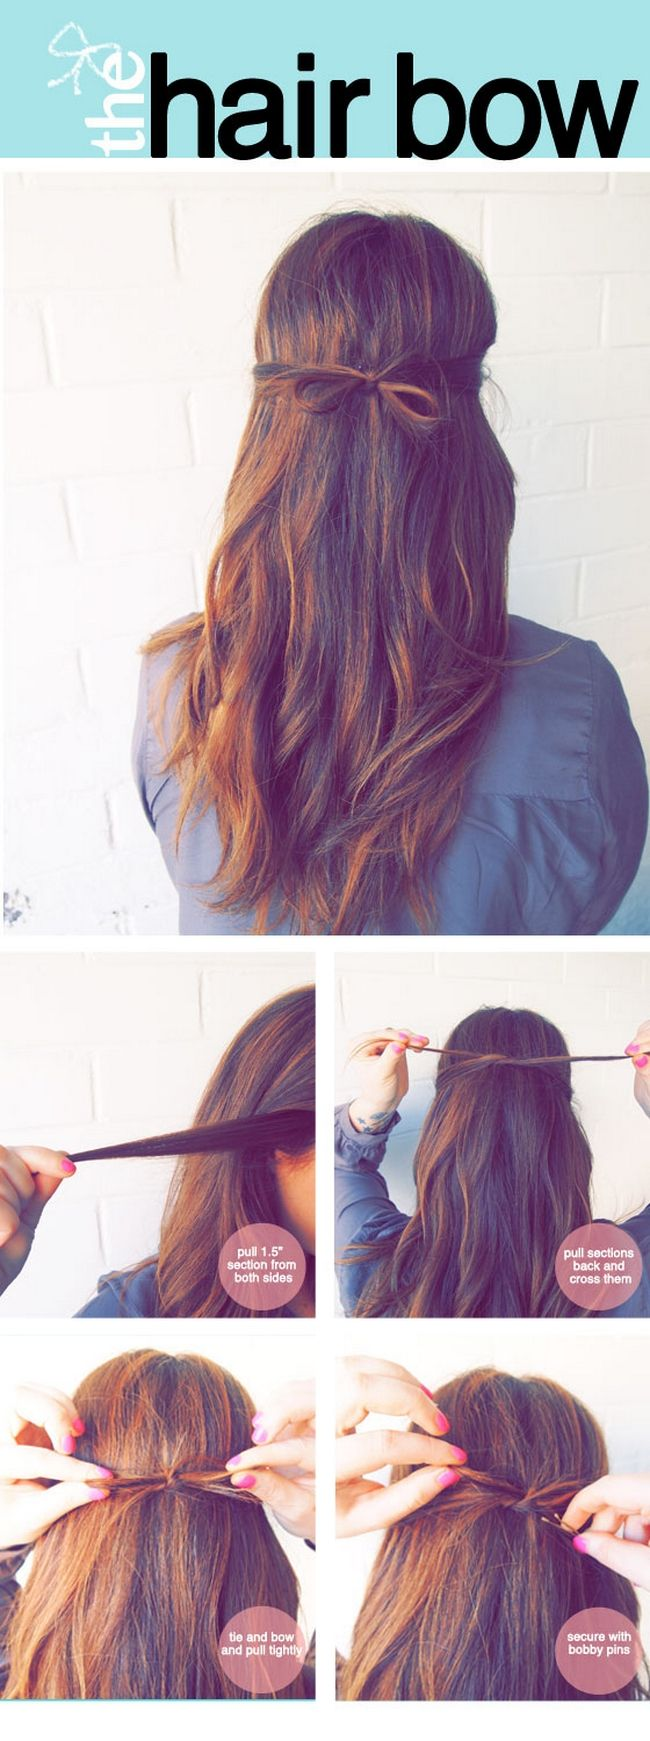 12 hairstyle hacks for lazy girls#hairstyle #hair #DIY